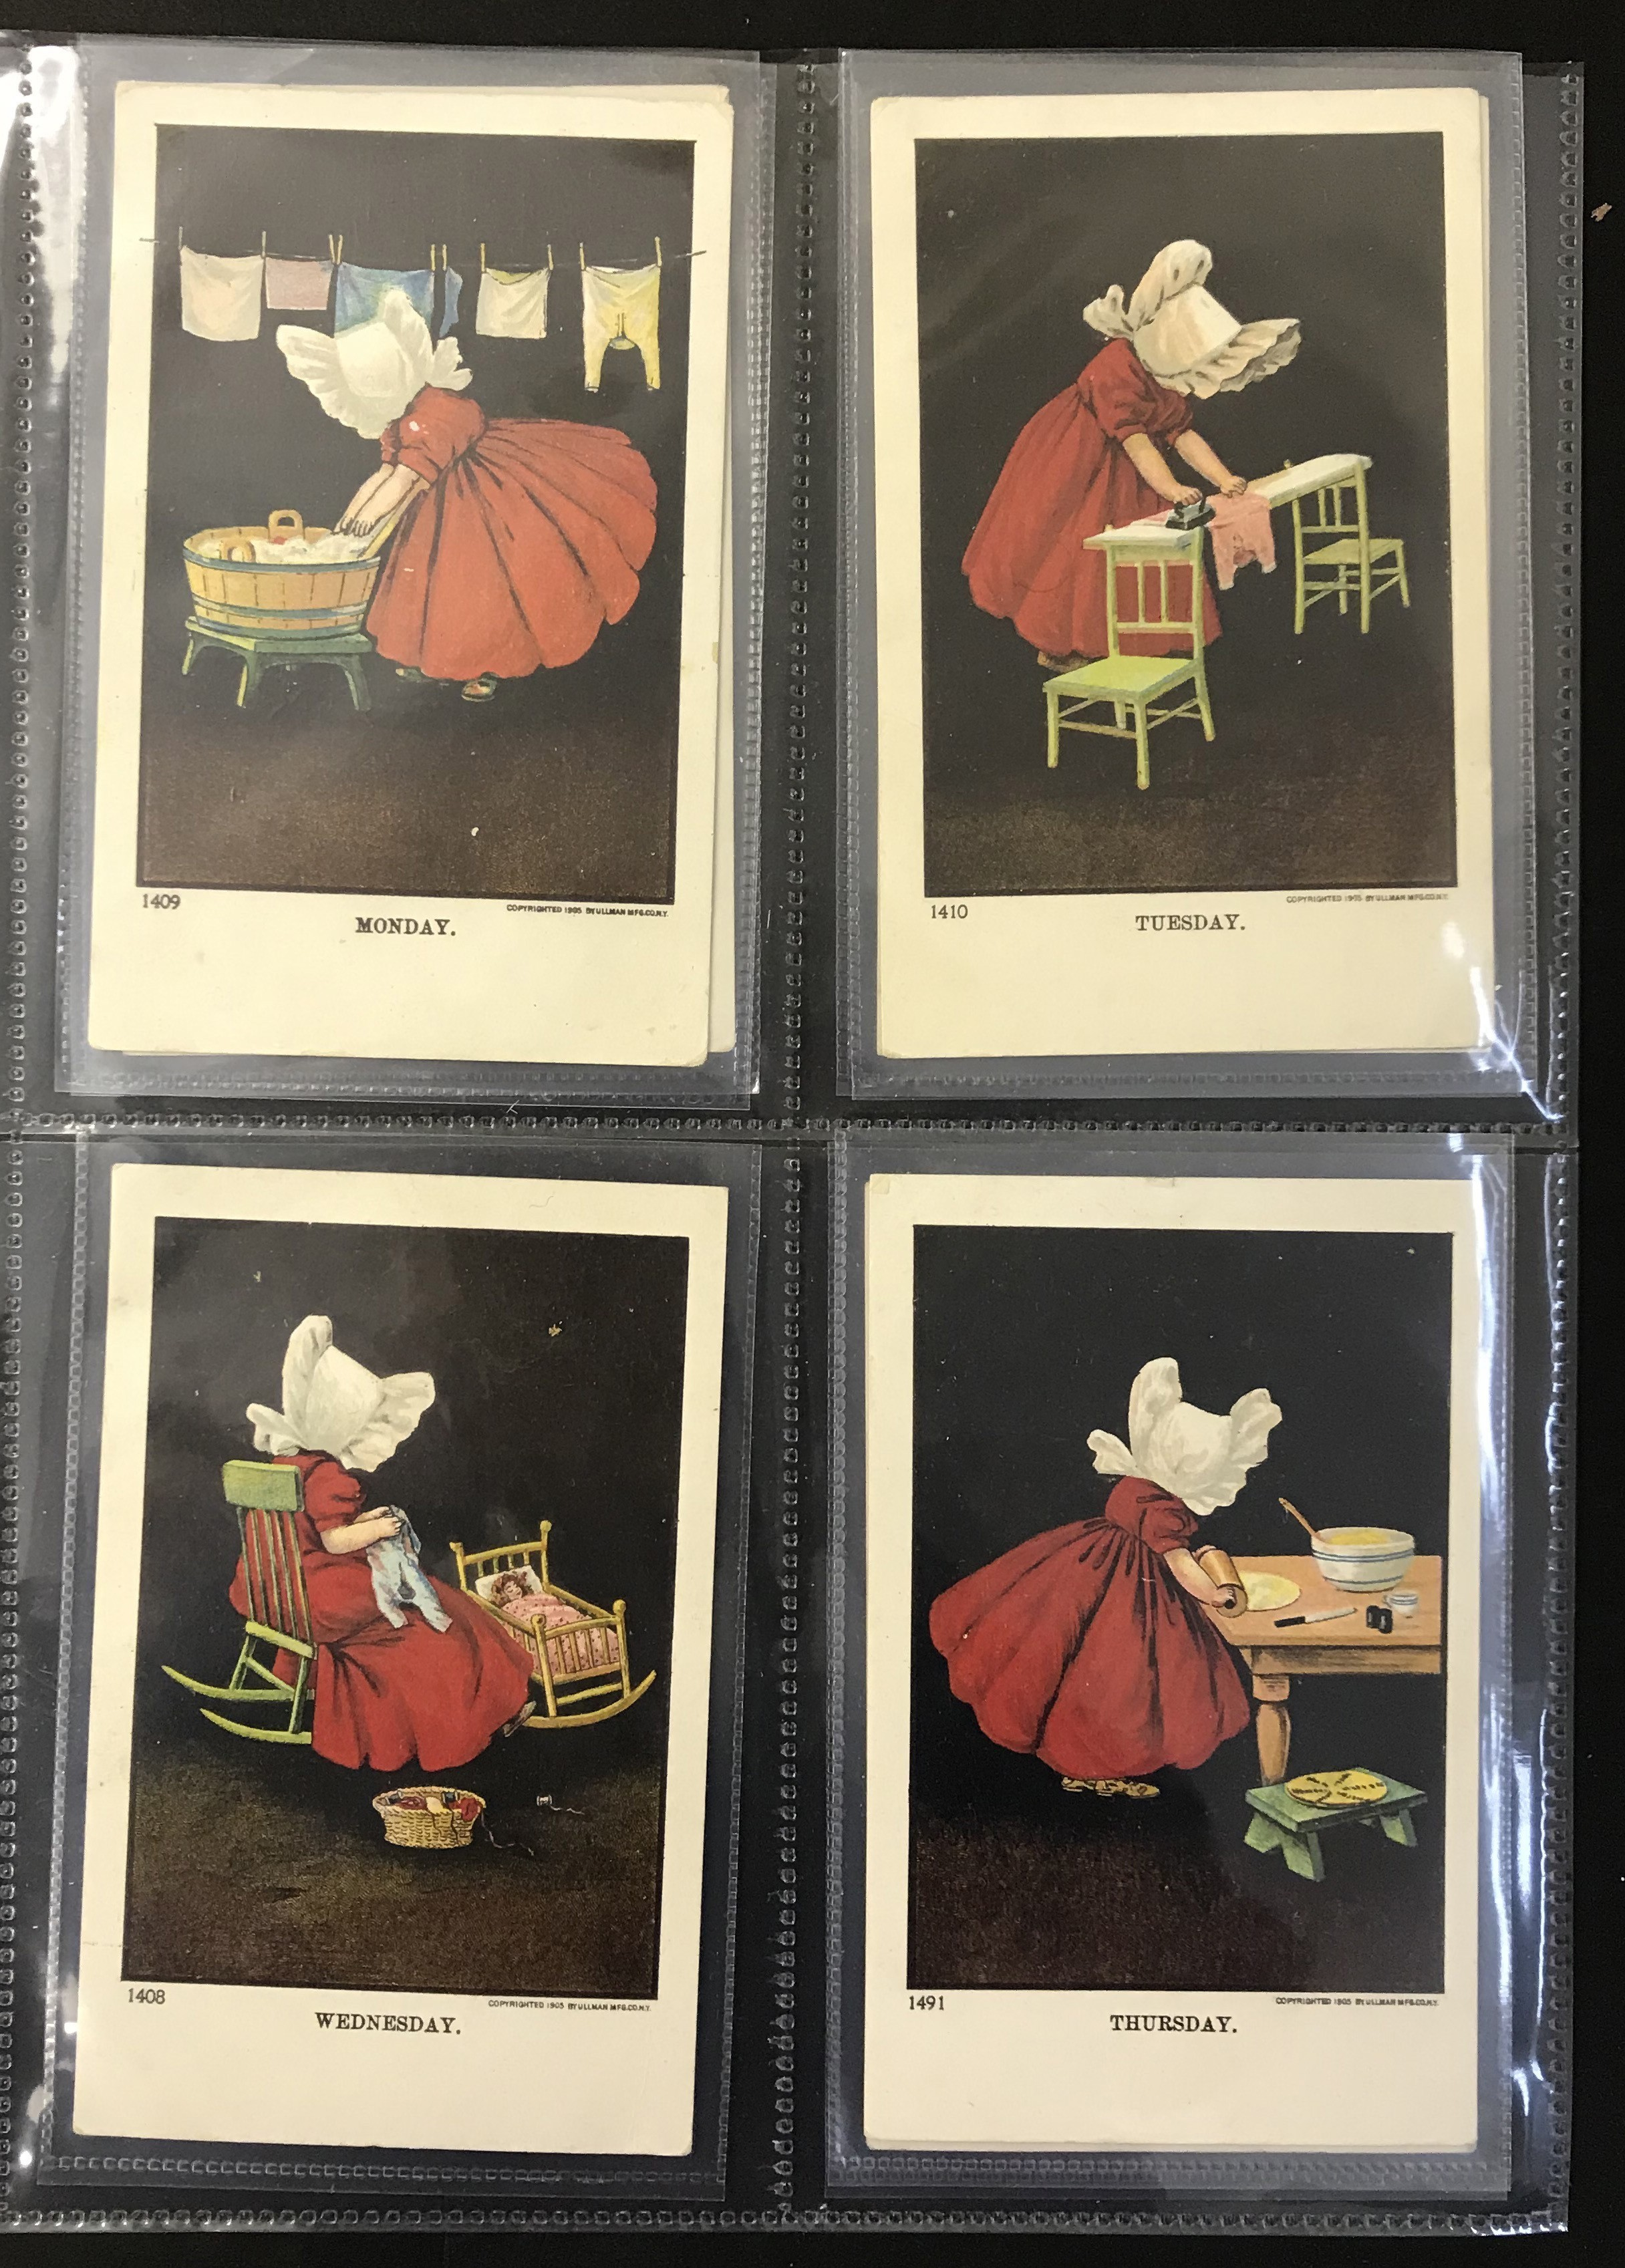 Lot 10 - Ullman Manufacturing Co. Postcards - Complete set of Sunbonnet Baby Days